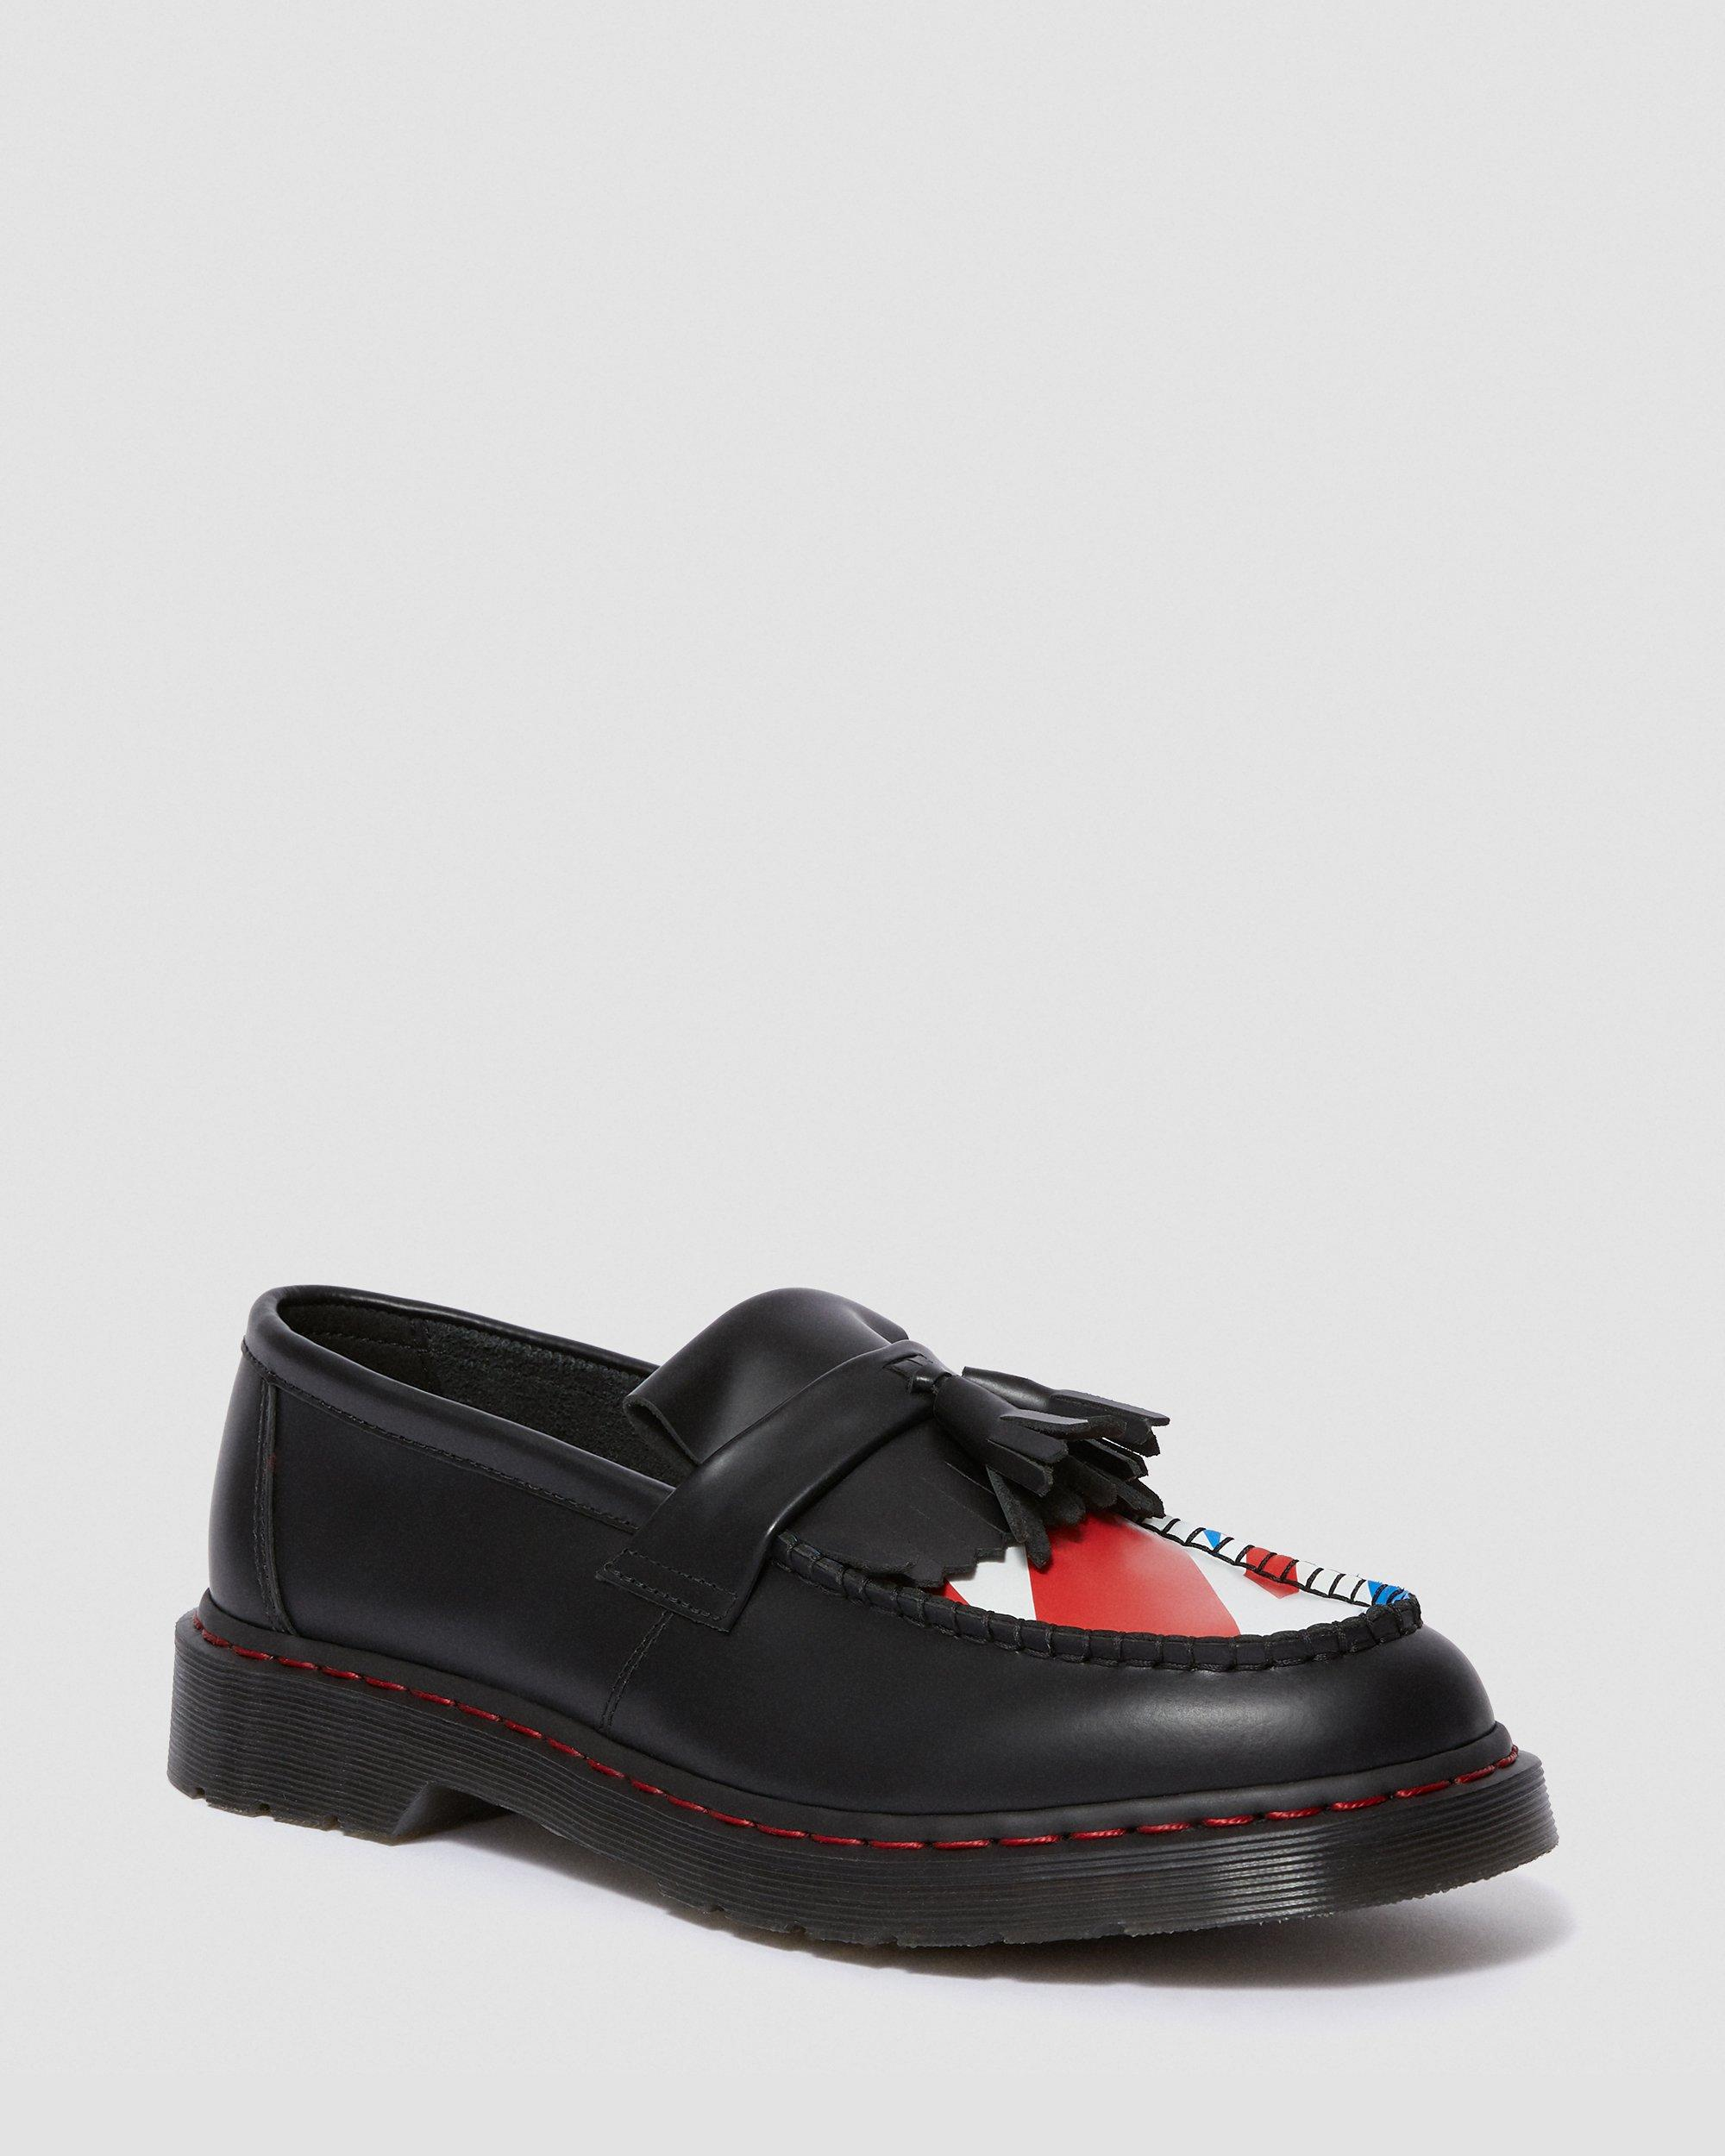 who is dr martens